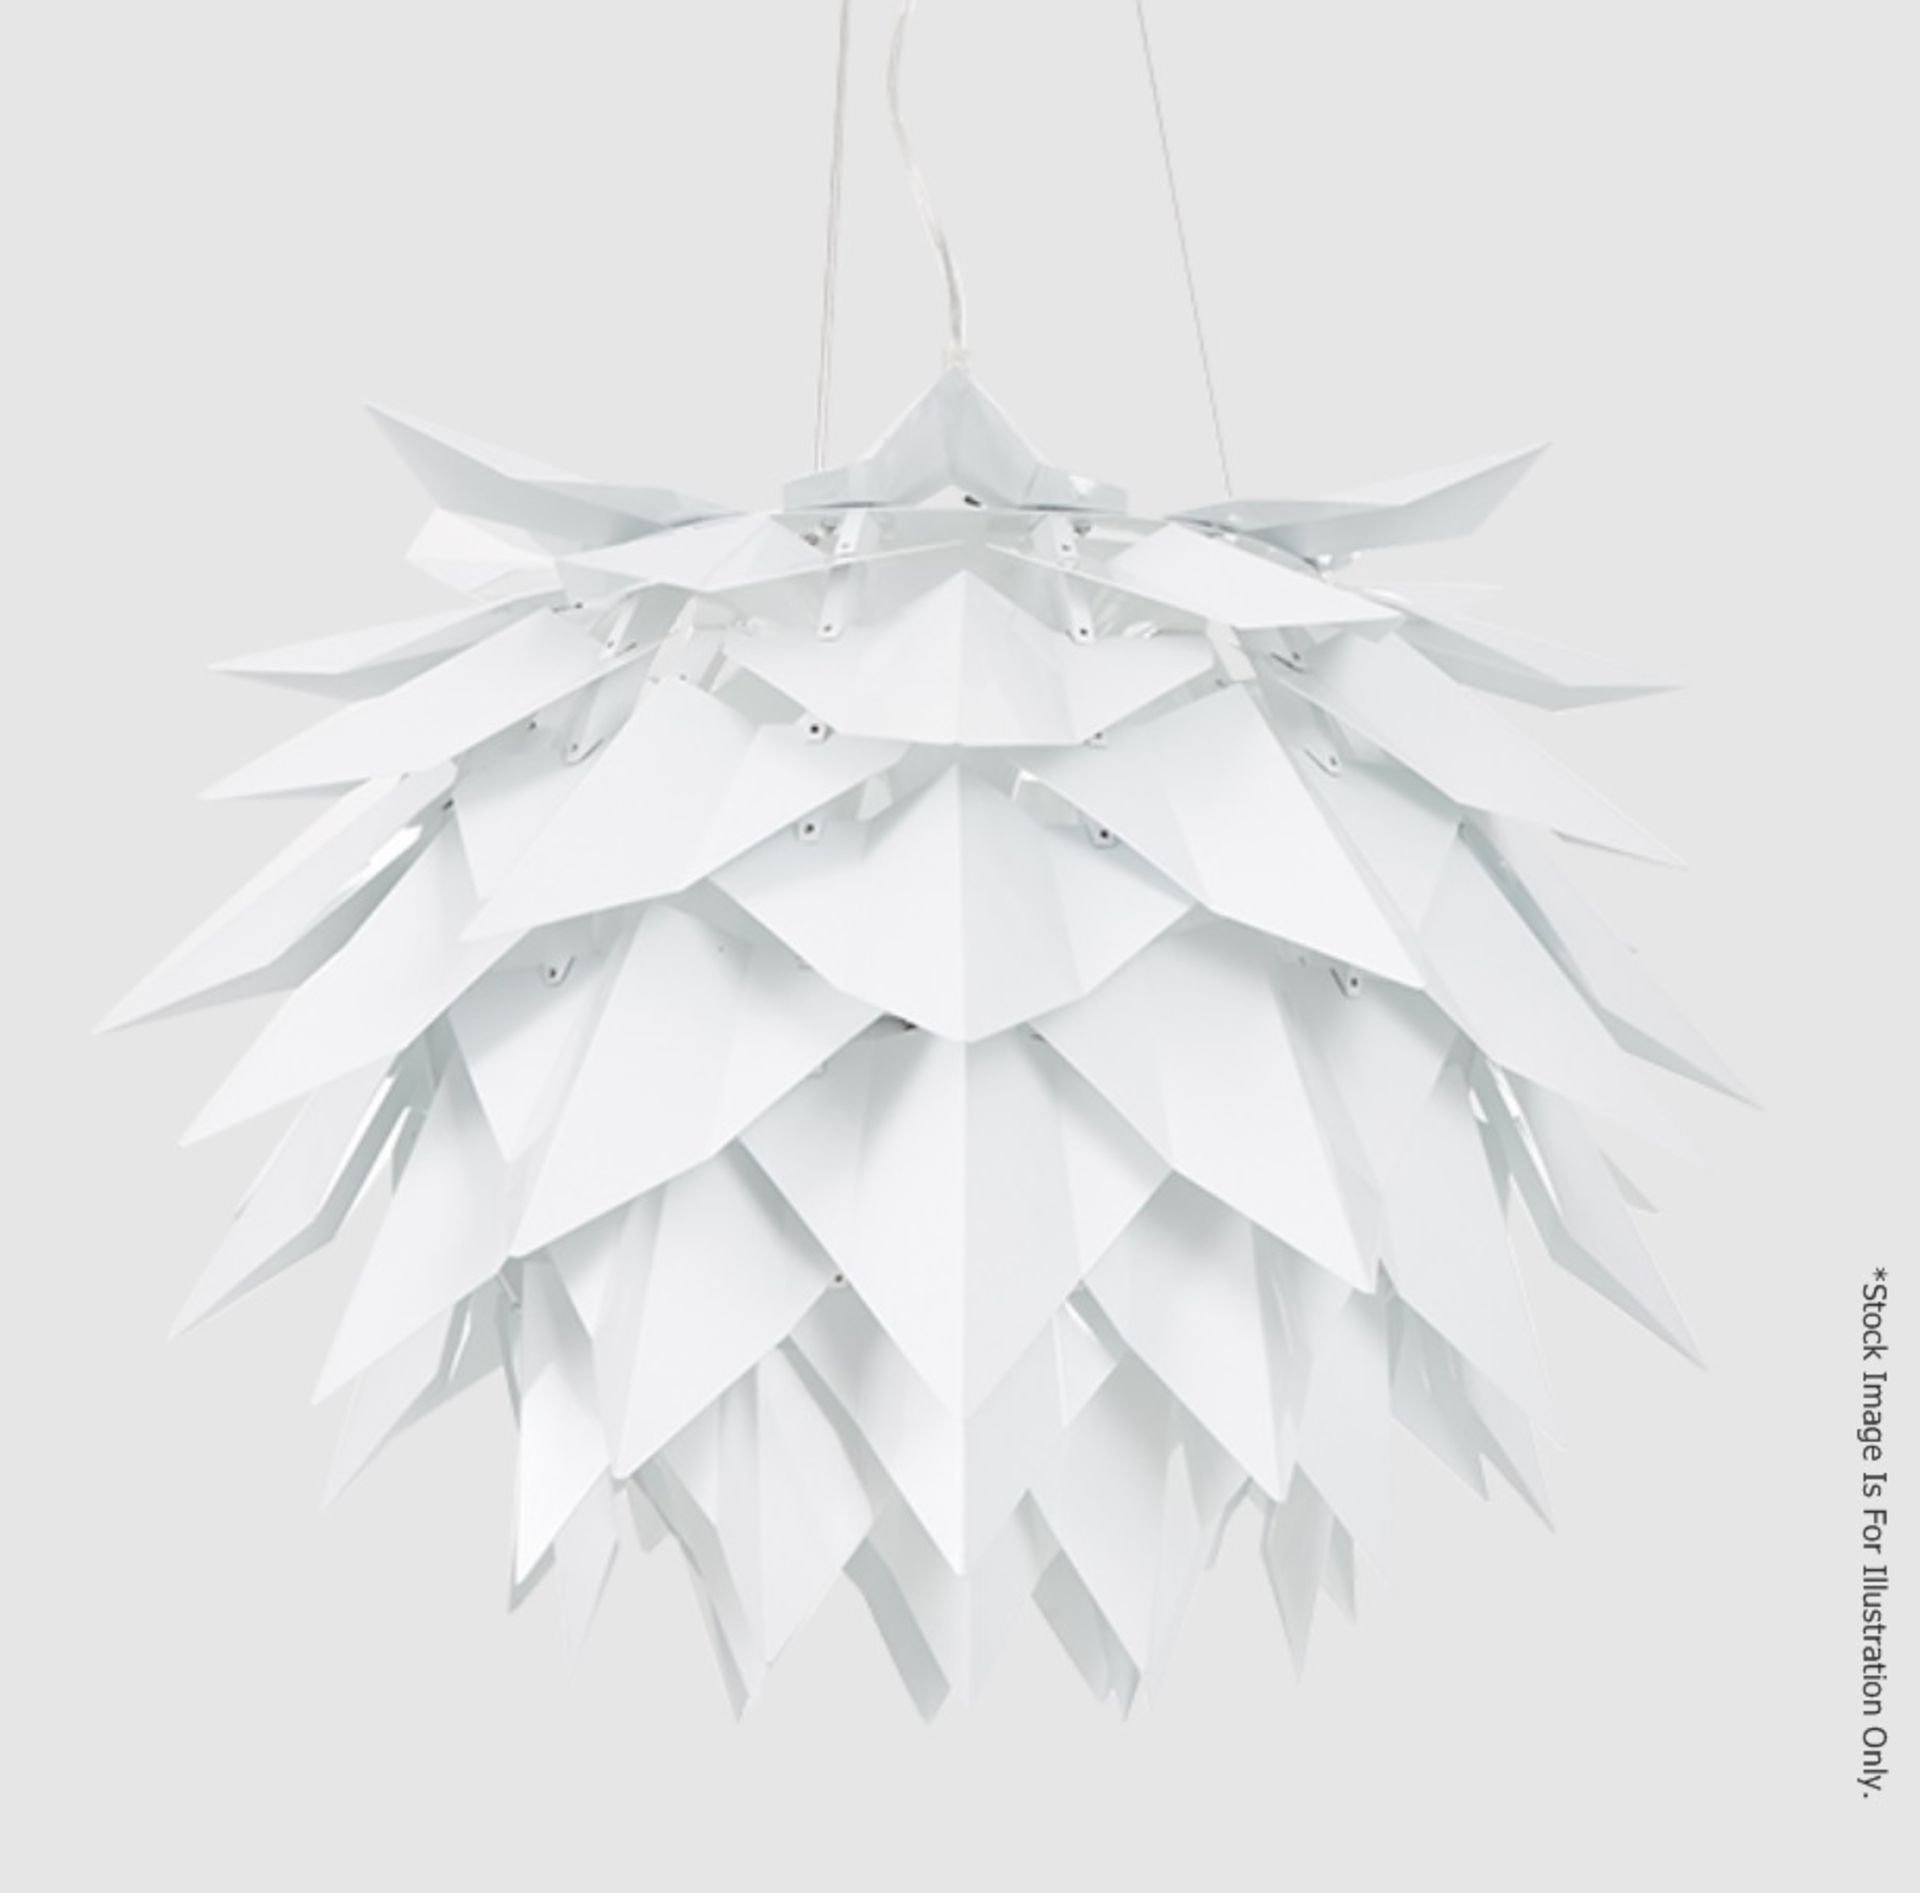 1 x 'Comosus' Statement Ceiling Pendant Light In Aluminium With A Brushed Silver Finish